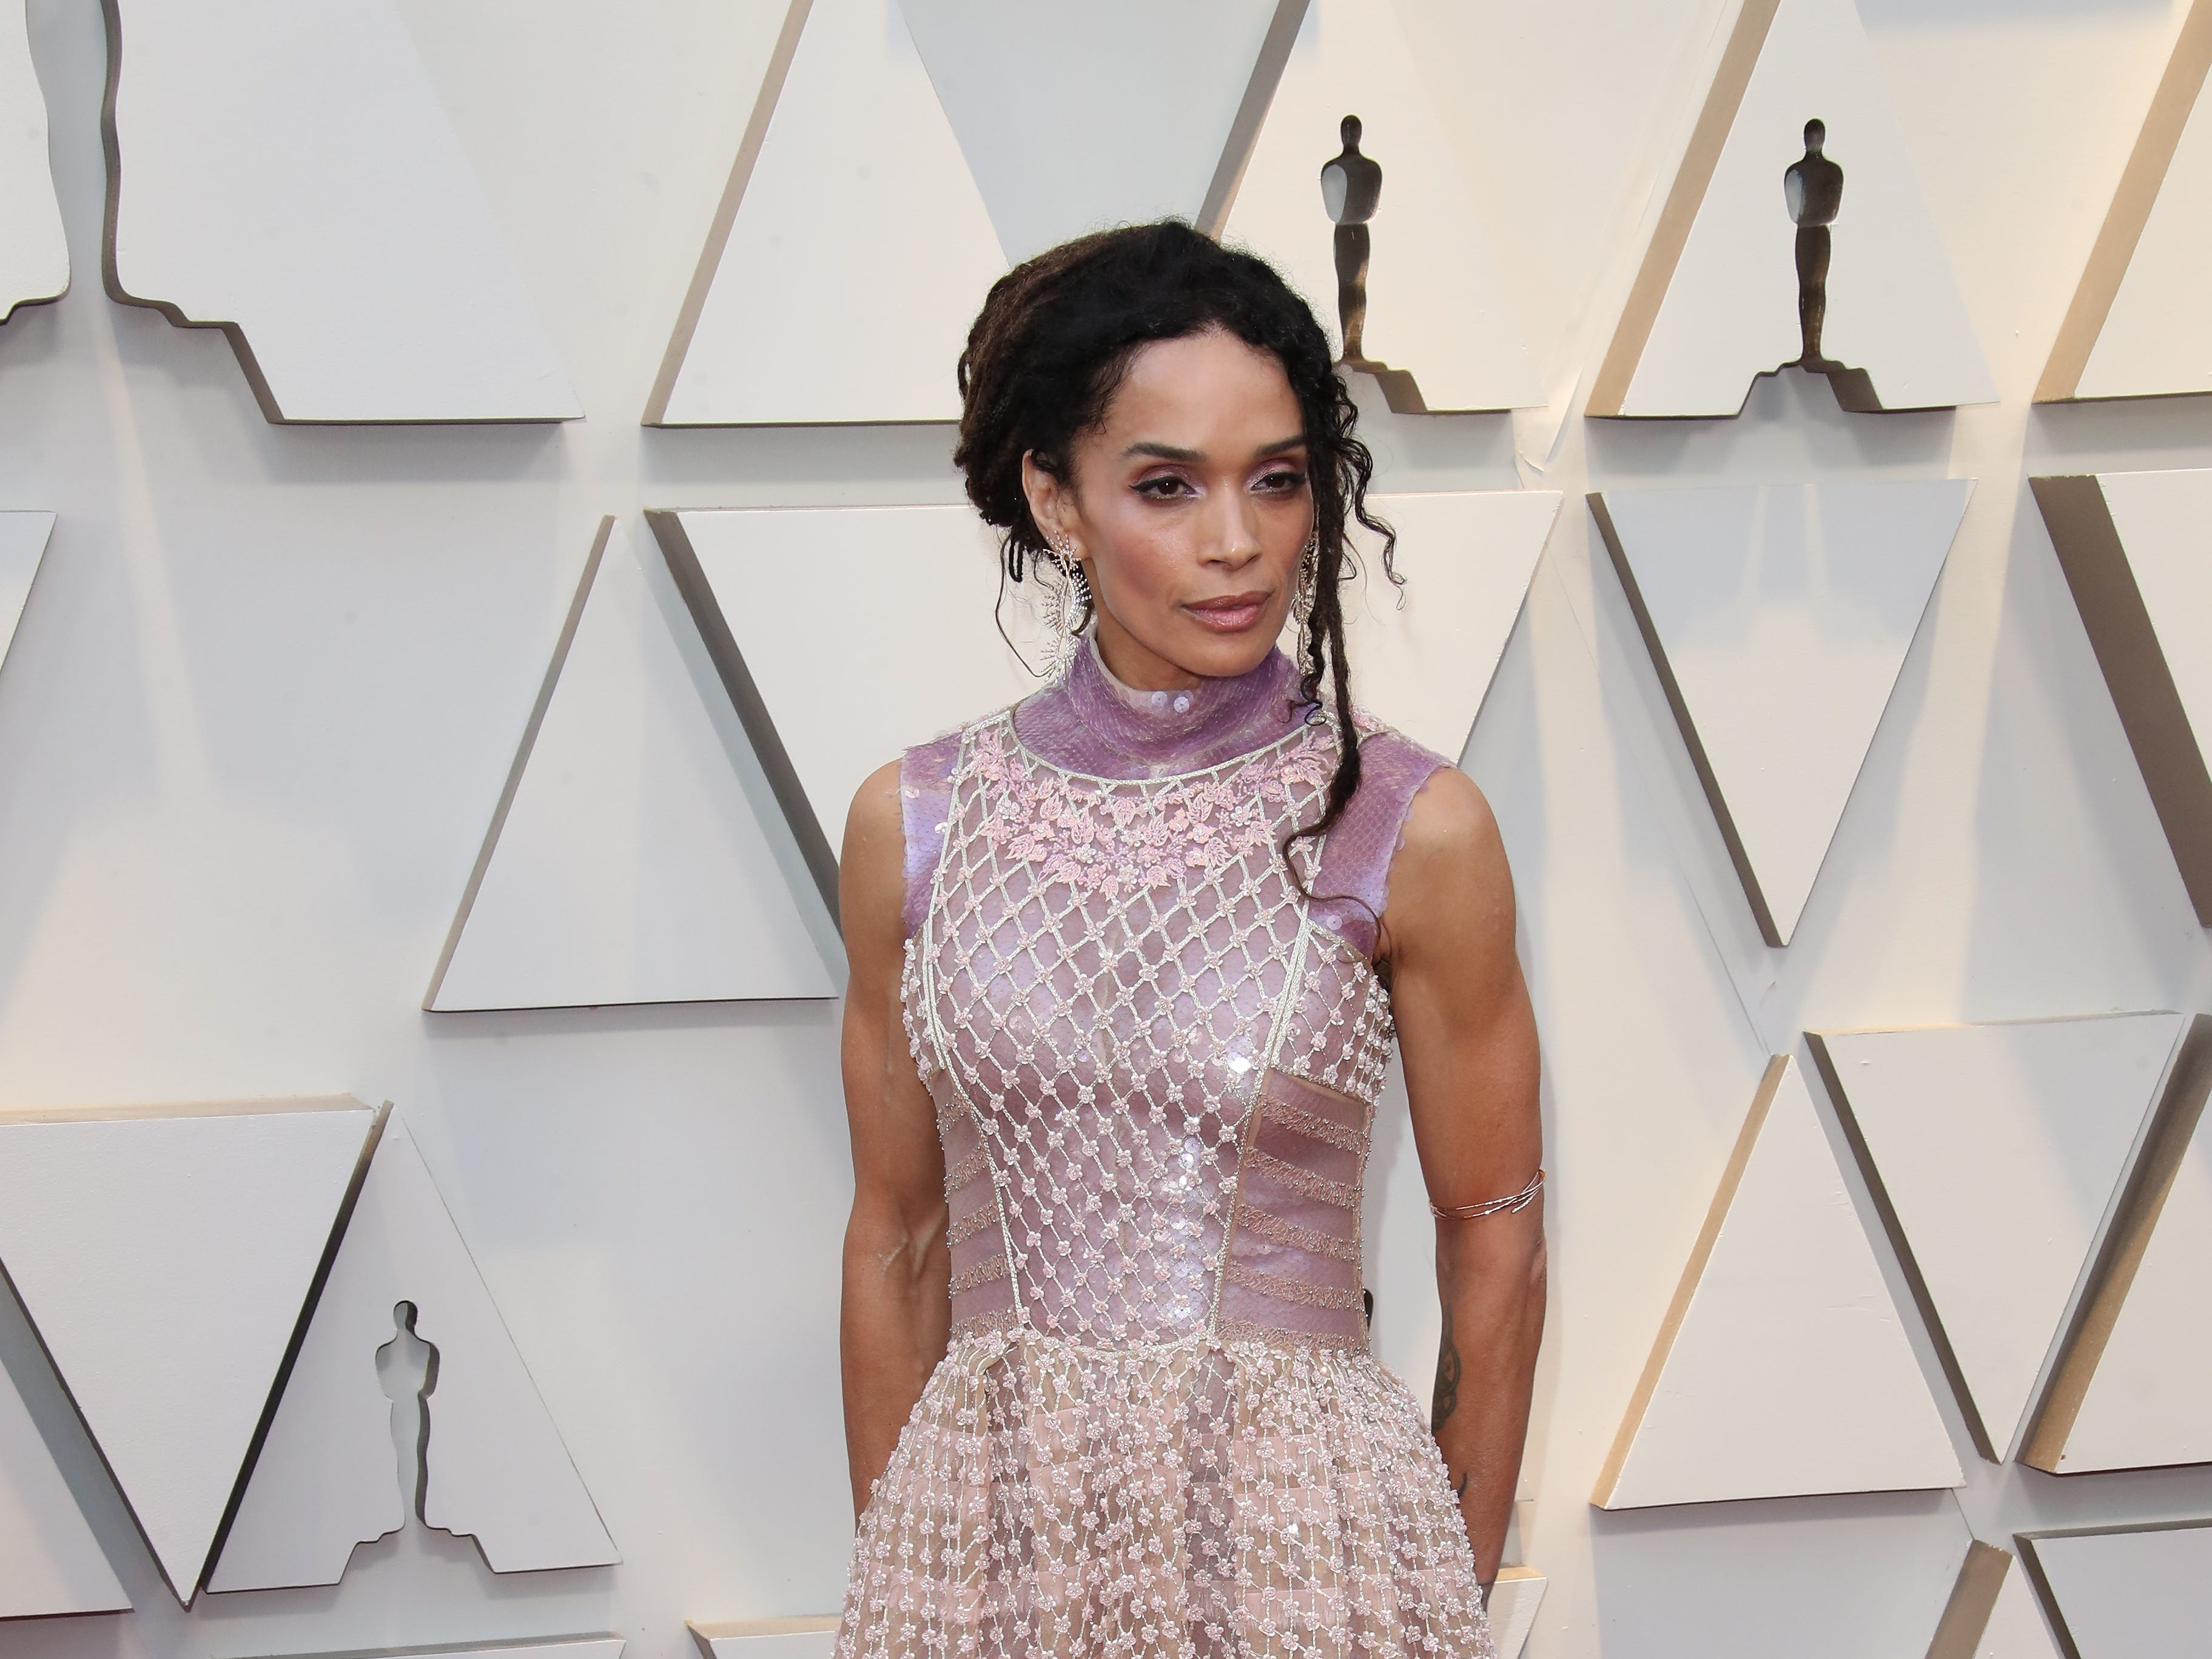 February 24, 2019; Los Angeles, CA, USA; Lisa Bonet arrives at the 91st Academy Awards at the Dolby Theatre. Mandatory Credit: Dan MacMedan-USA TODAY NETWORK (Via OlyDrop)